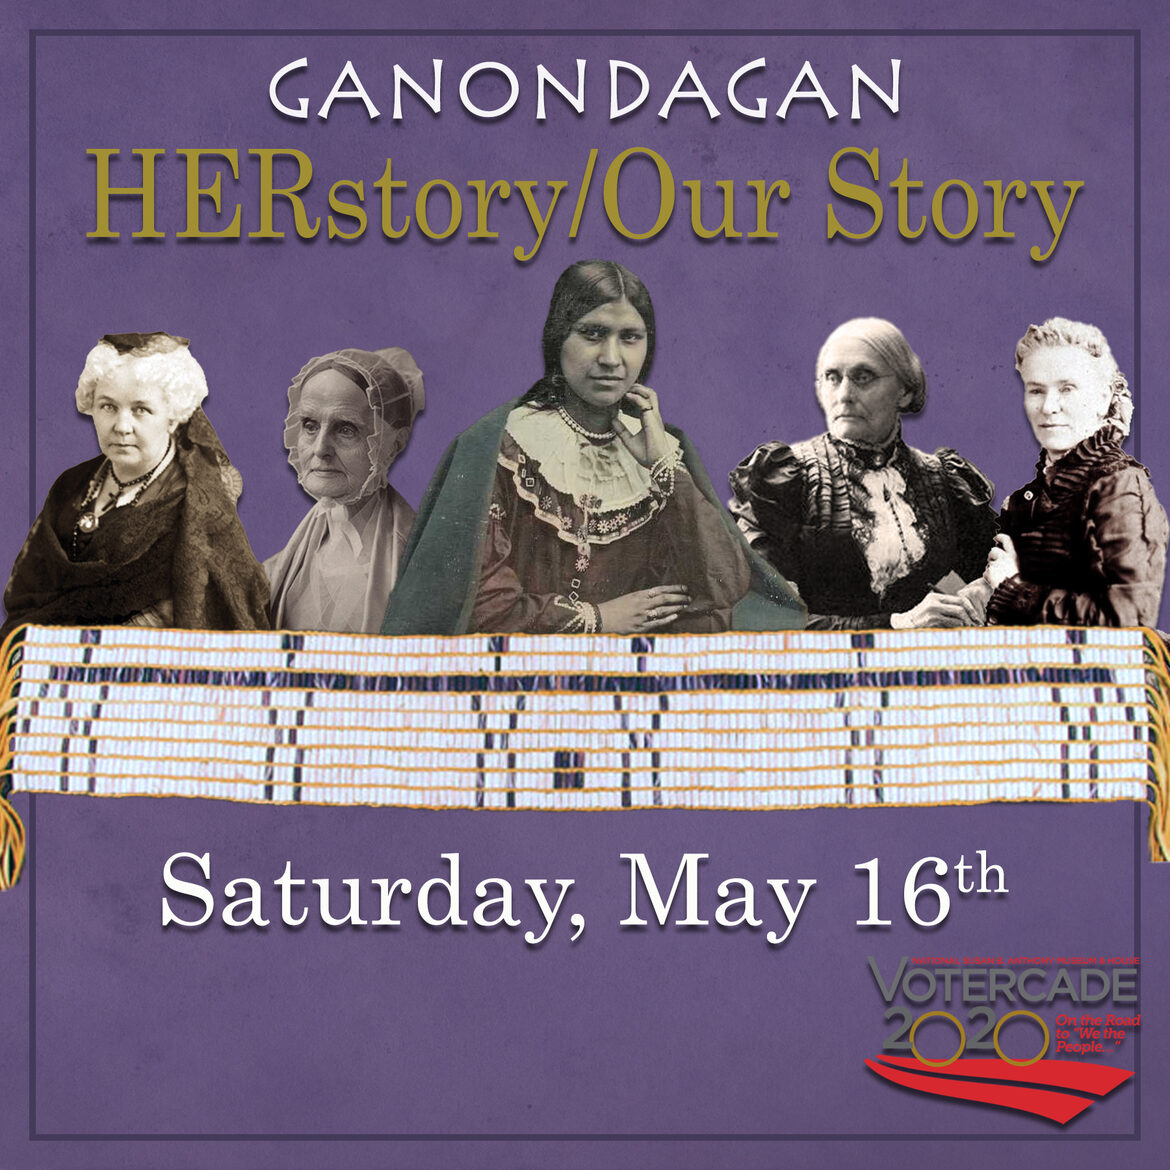 Elizabeth Cady Stanton, Lucretia Mott, Caroline Parker, Susan B Anthony, and Matilda Joslyn Gage pictured together with the Womens Nomination Wampum Belt below them. Text reads: Ganondagan Her Story/Our Story, May 16th. Votercade 2020